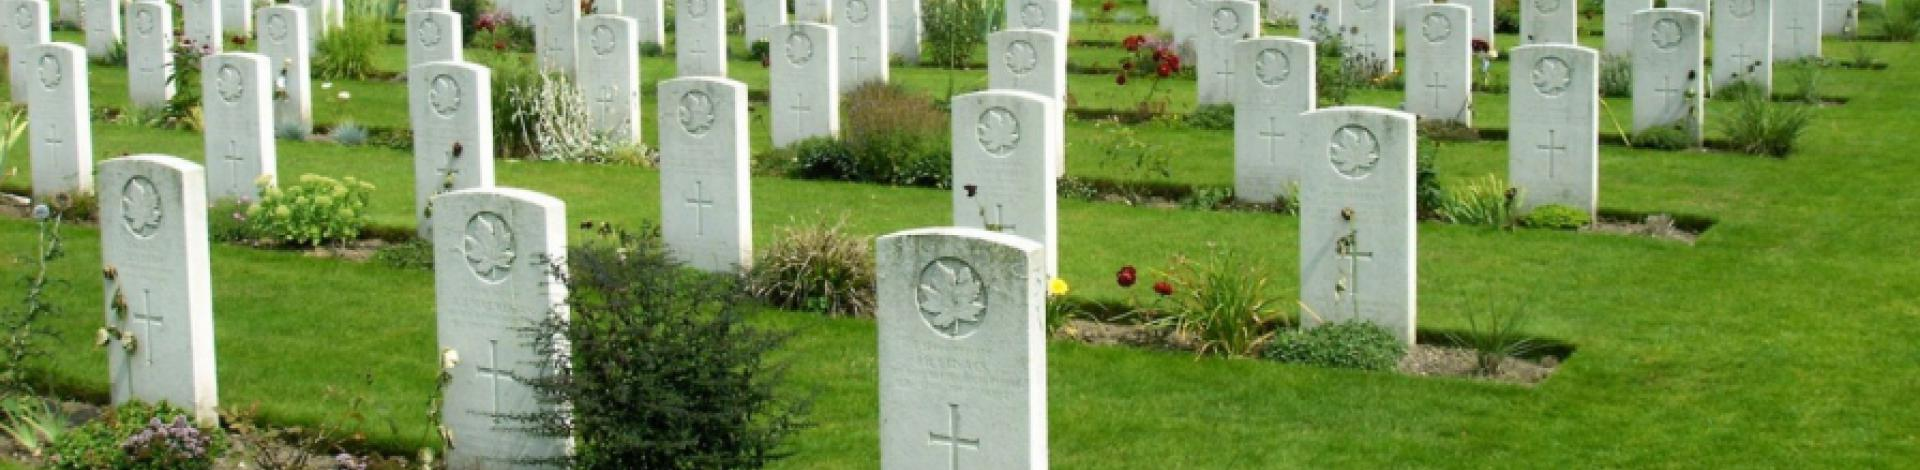 Rows of gravestones in a war cemetery.